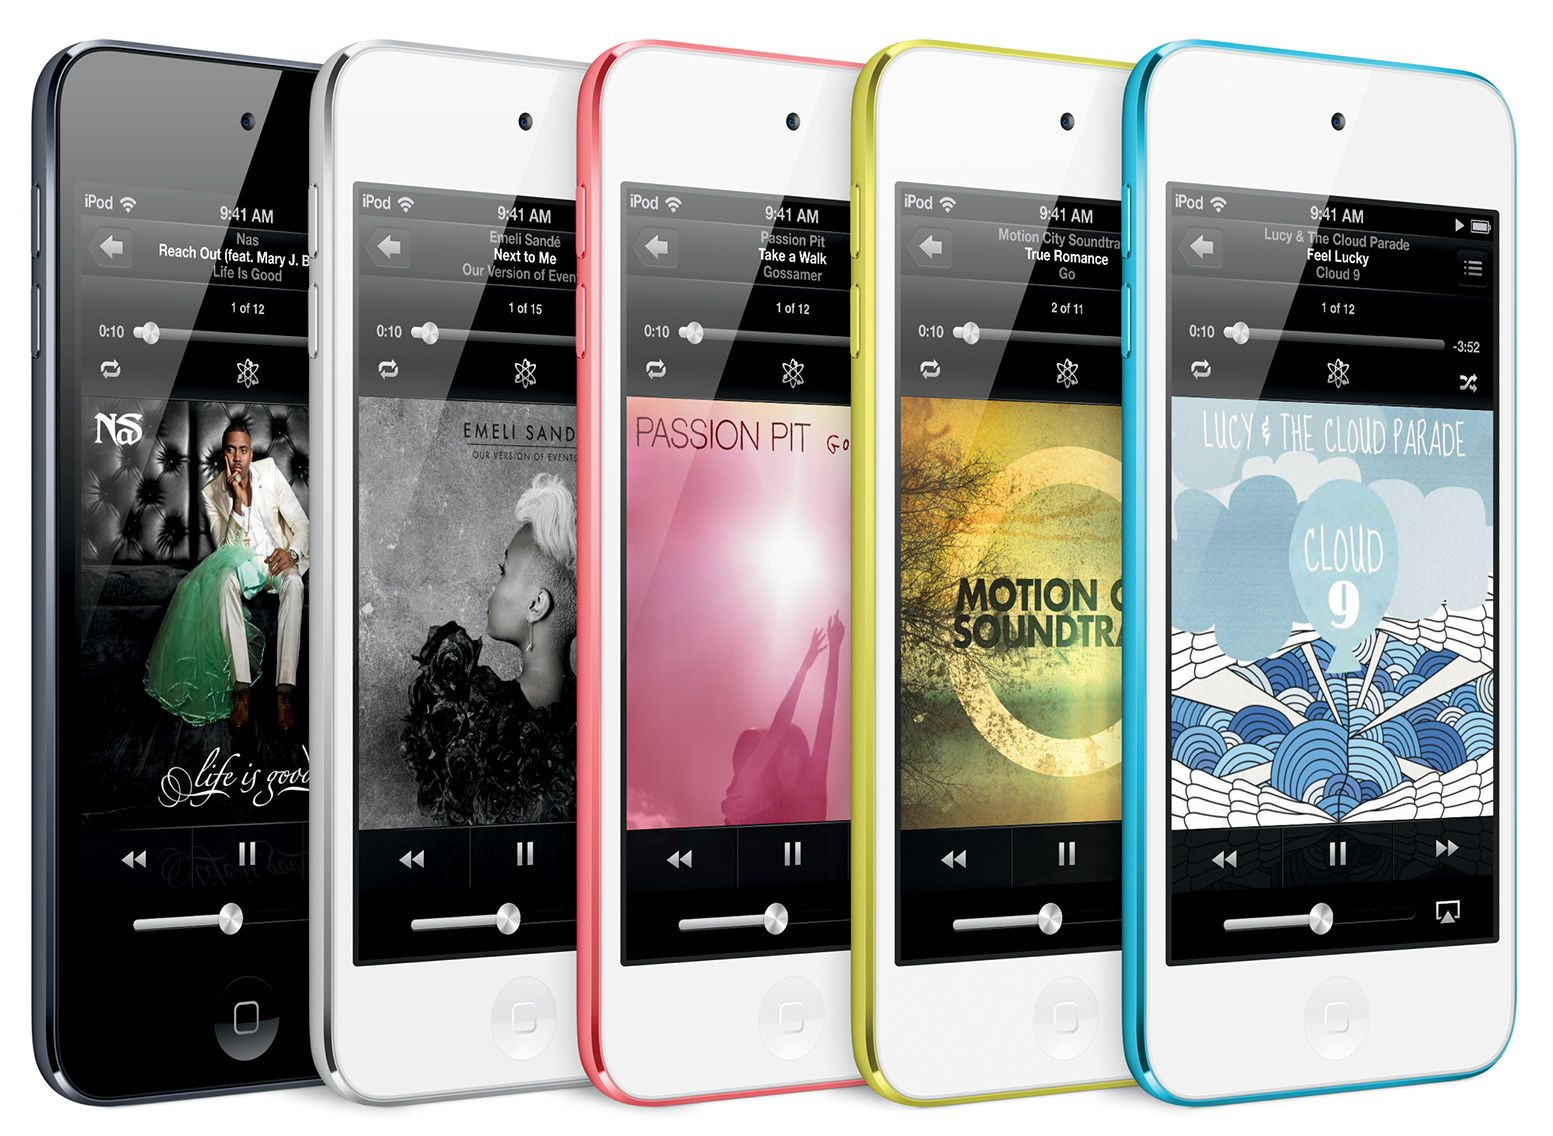 Comparing All The Recent Ipod Models Apple Touch 6 16gb Blue